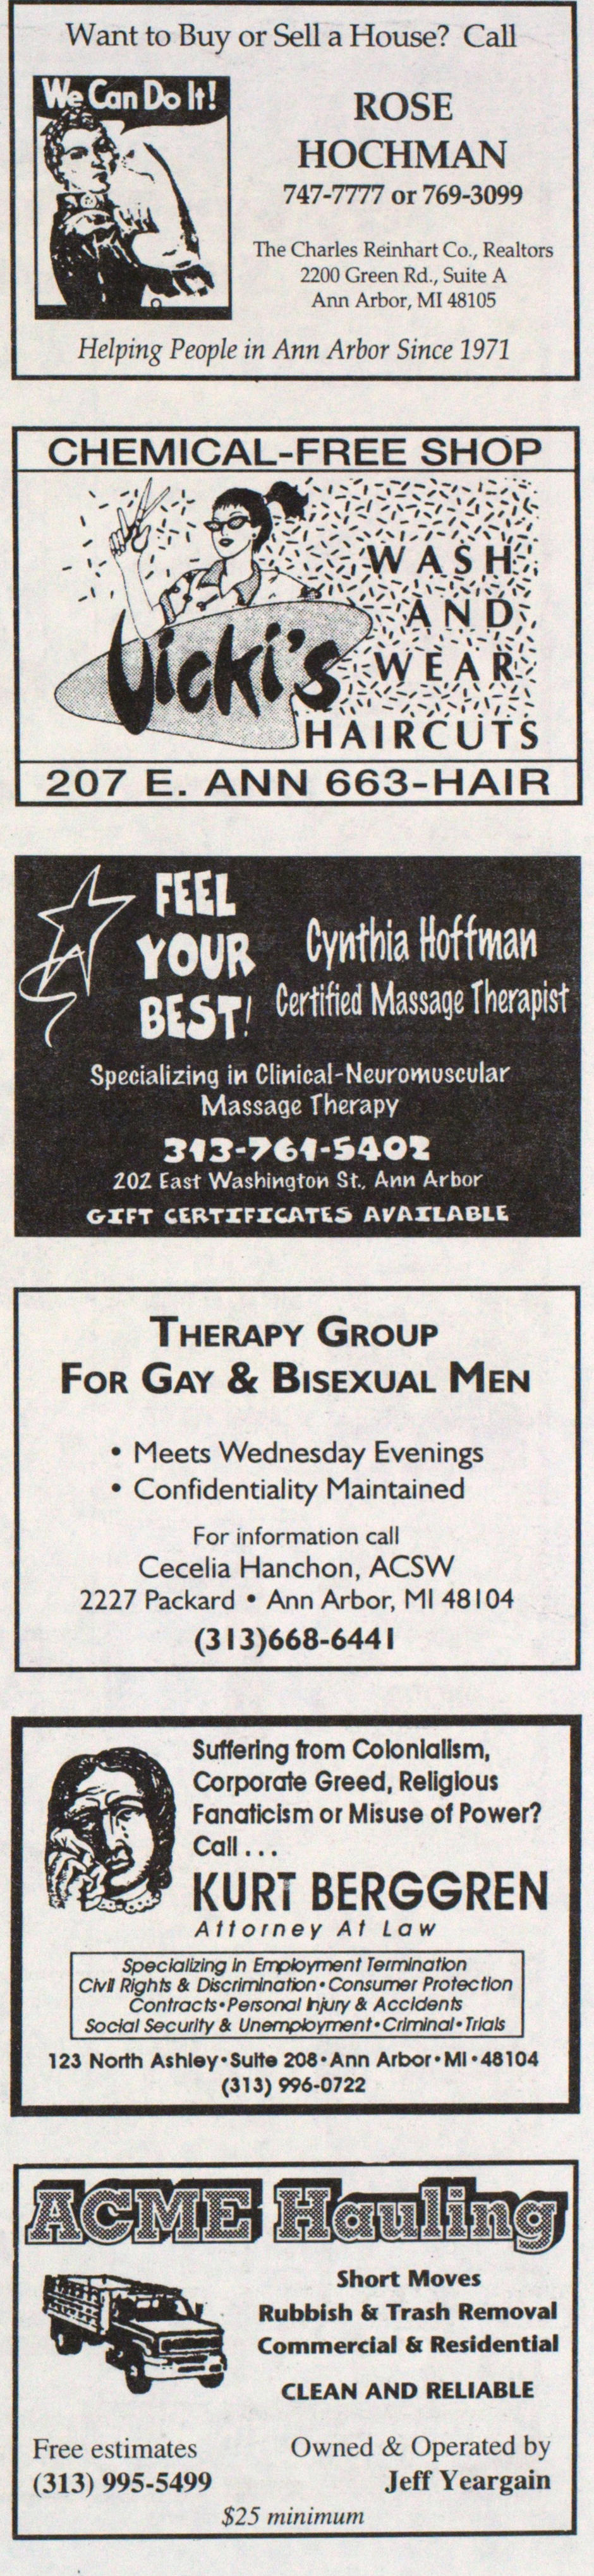 Therapy Group For Gay & Bisexual Men Mee... image